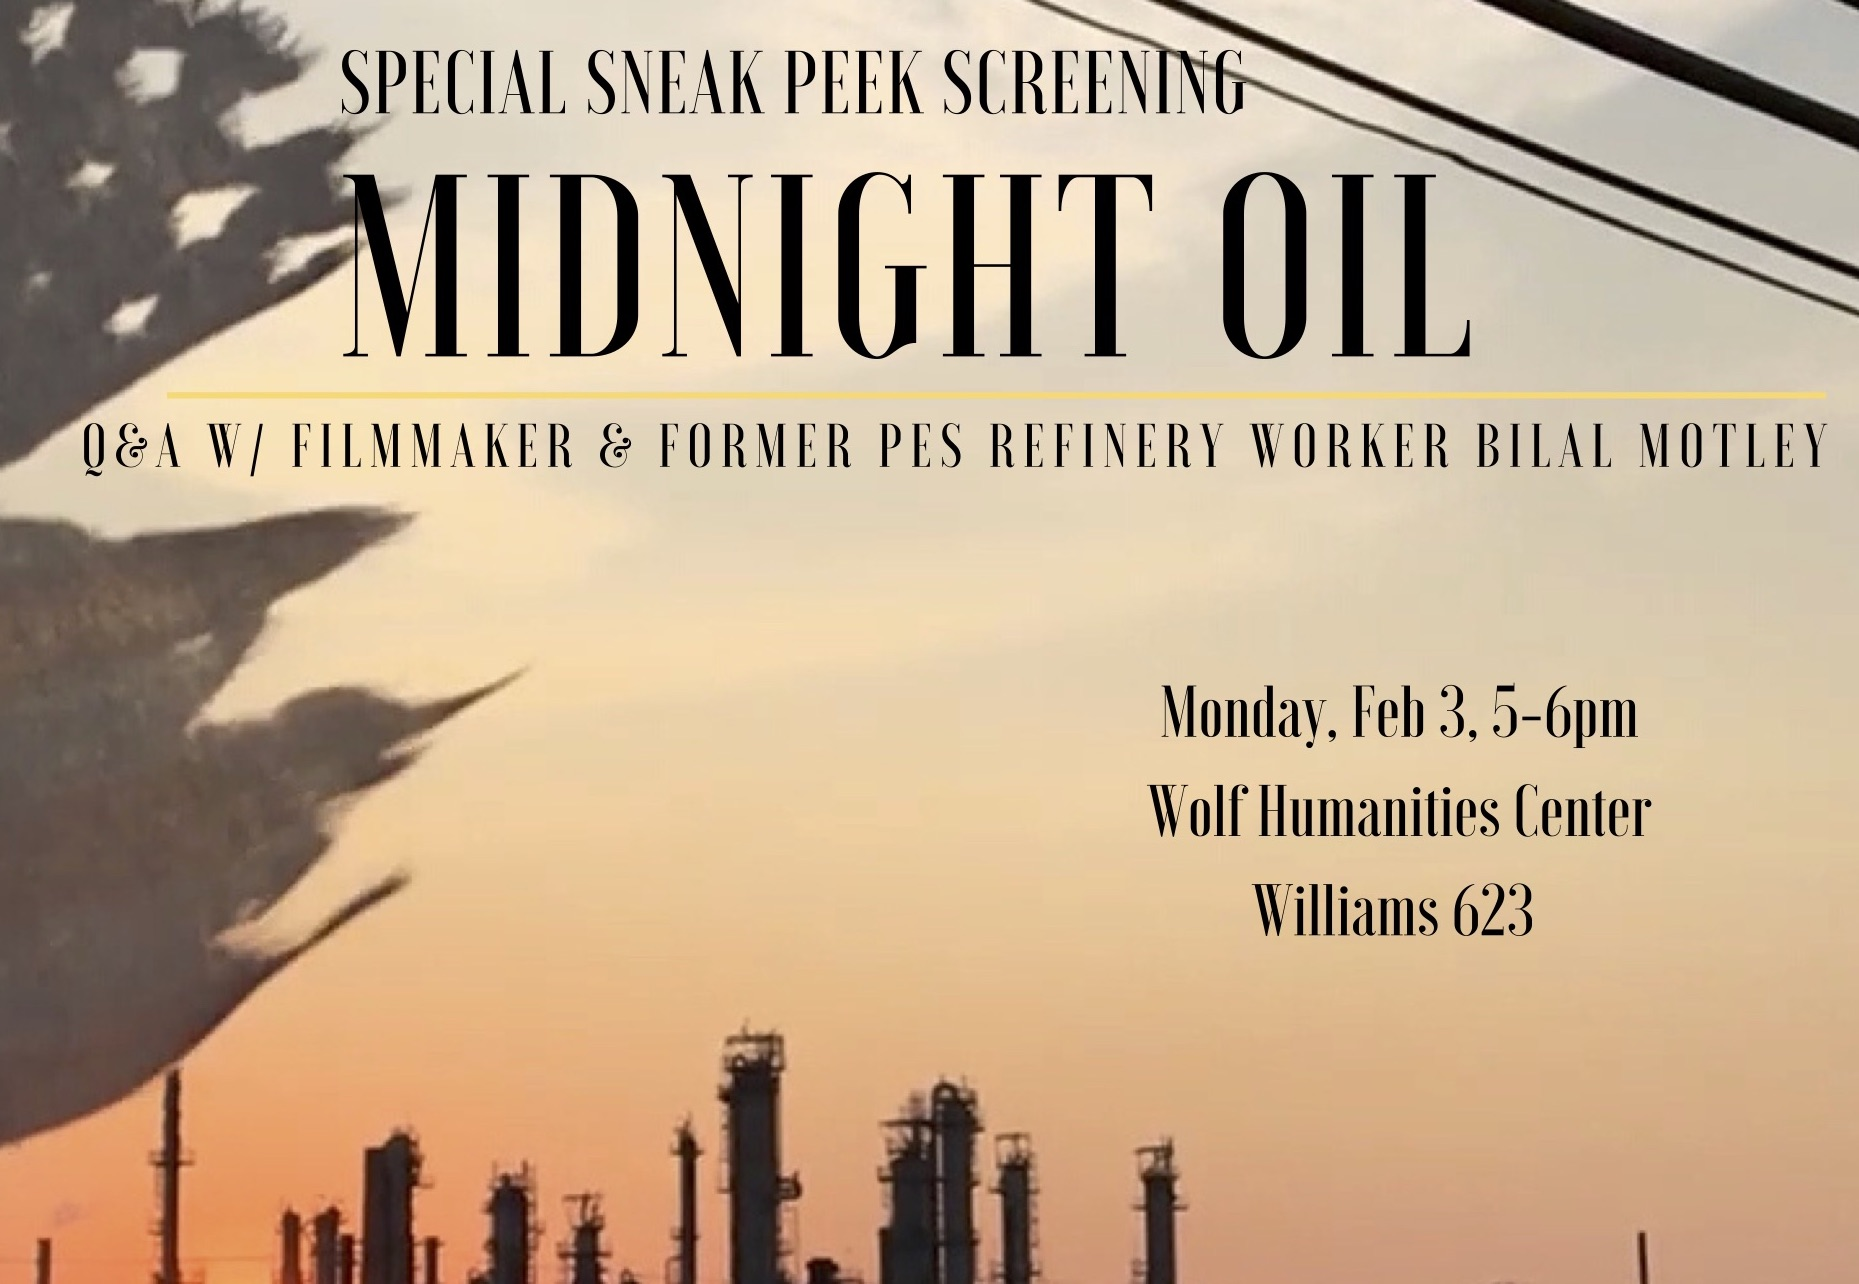 midnight oil screening poster